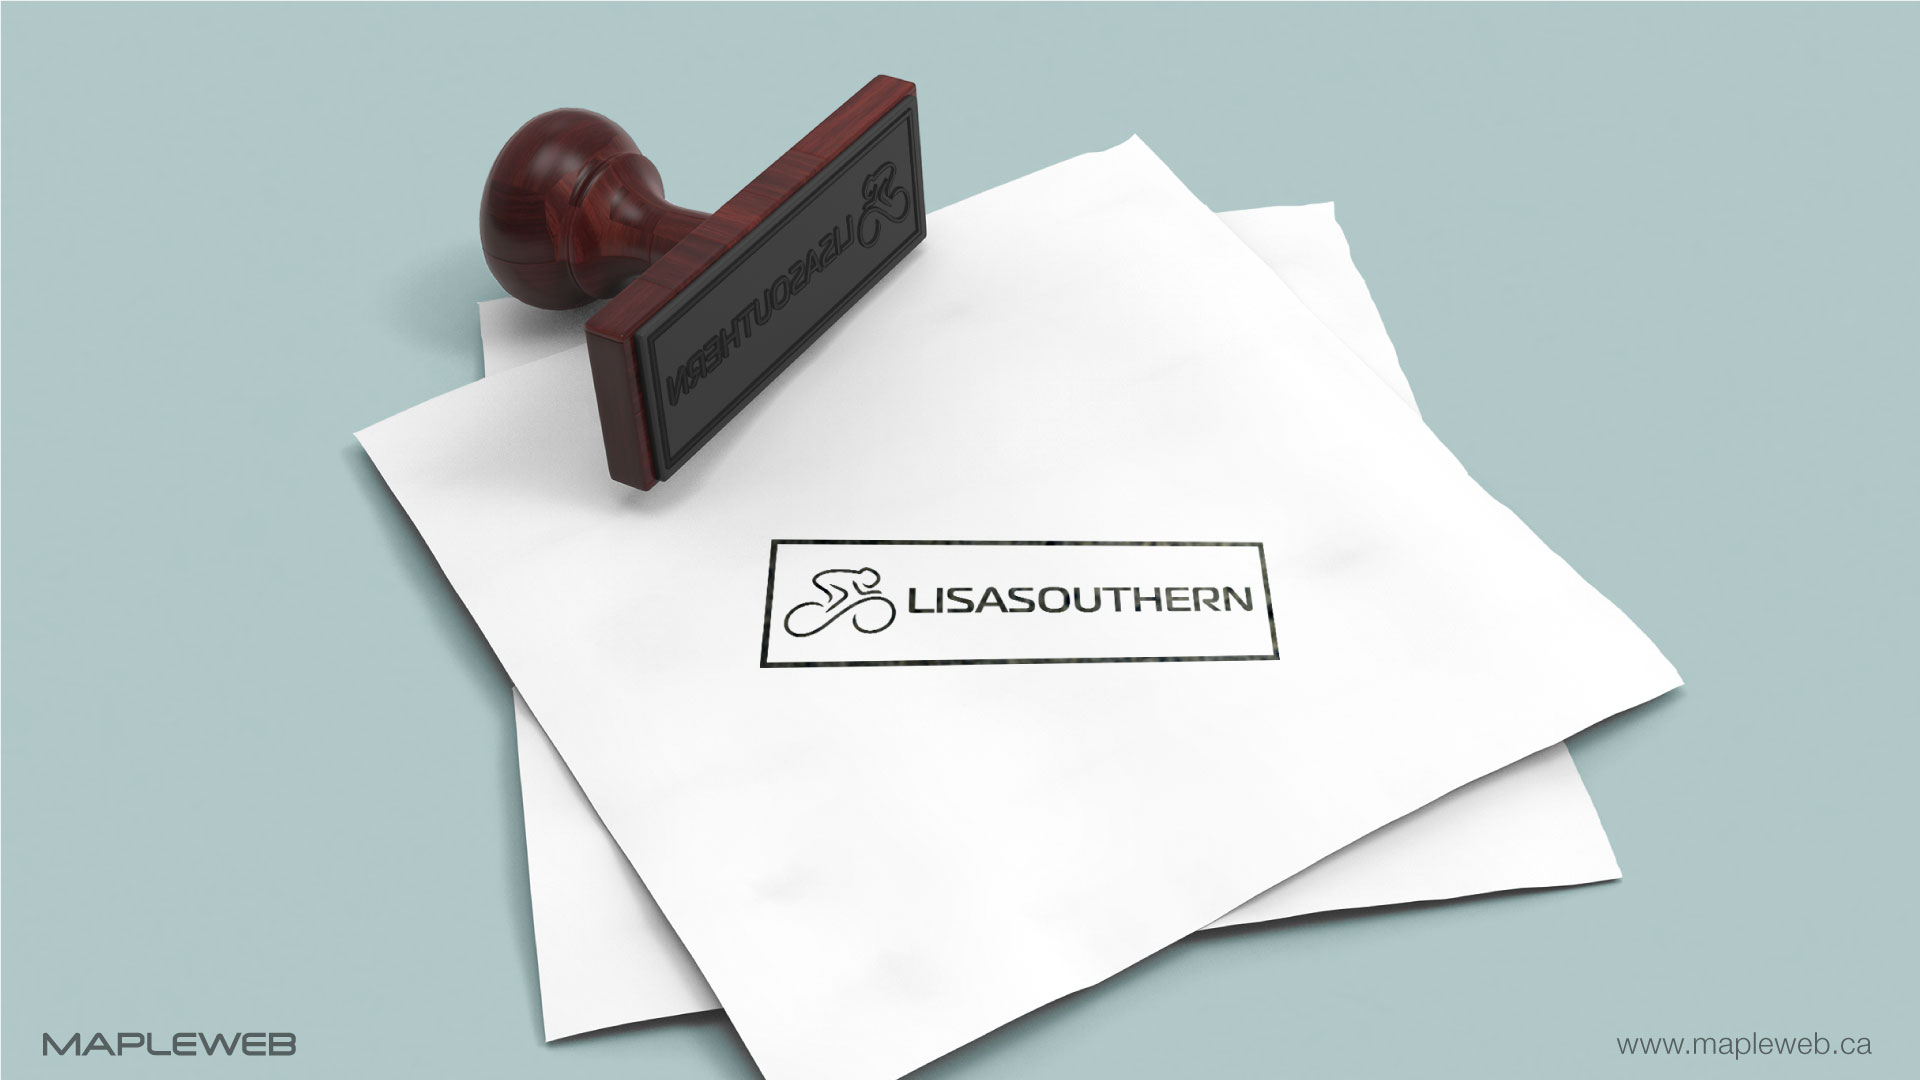 lisa-southern-brand-logo-design-by-mapleweb-vancouver-canada-stamp-mock